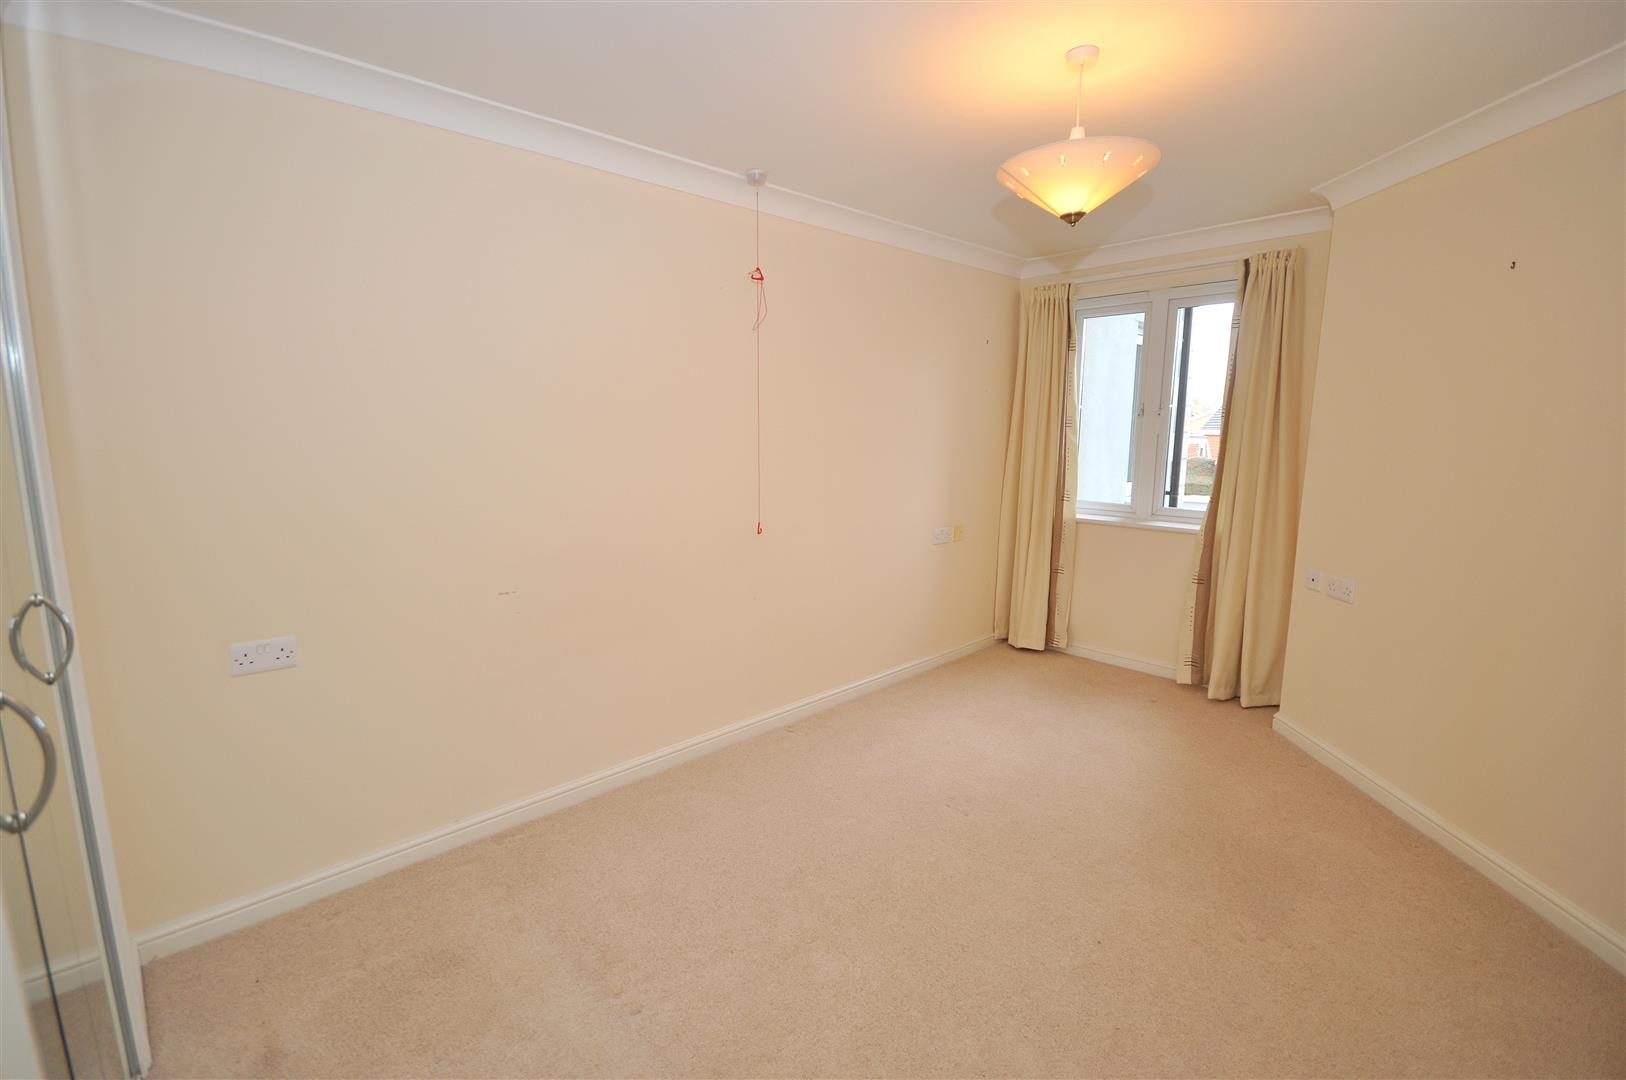 Bedroom Property In Yorkshire With Two Reception Rooms